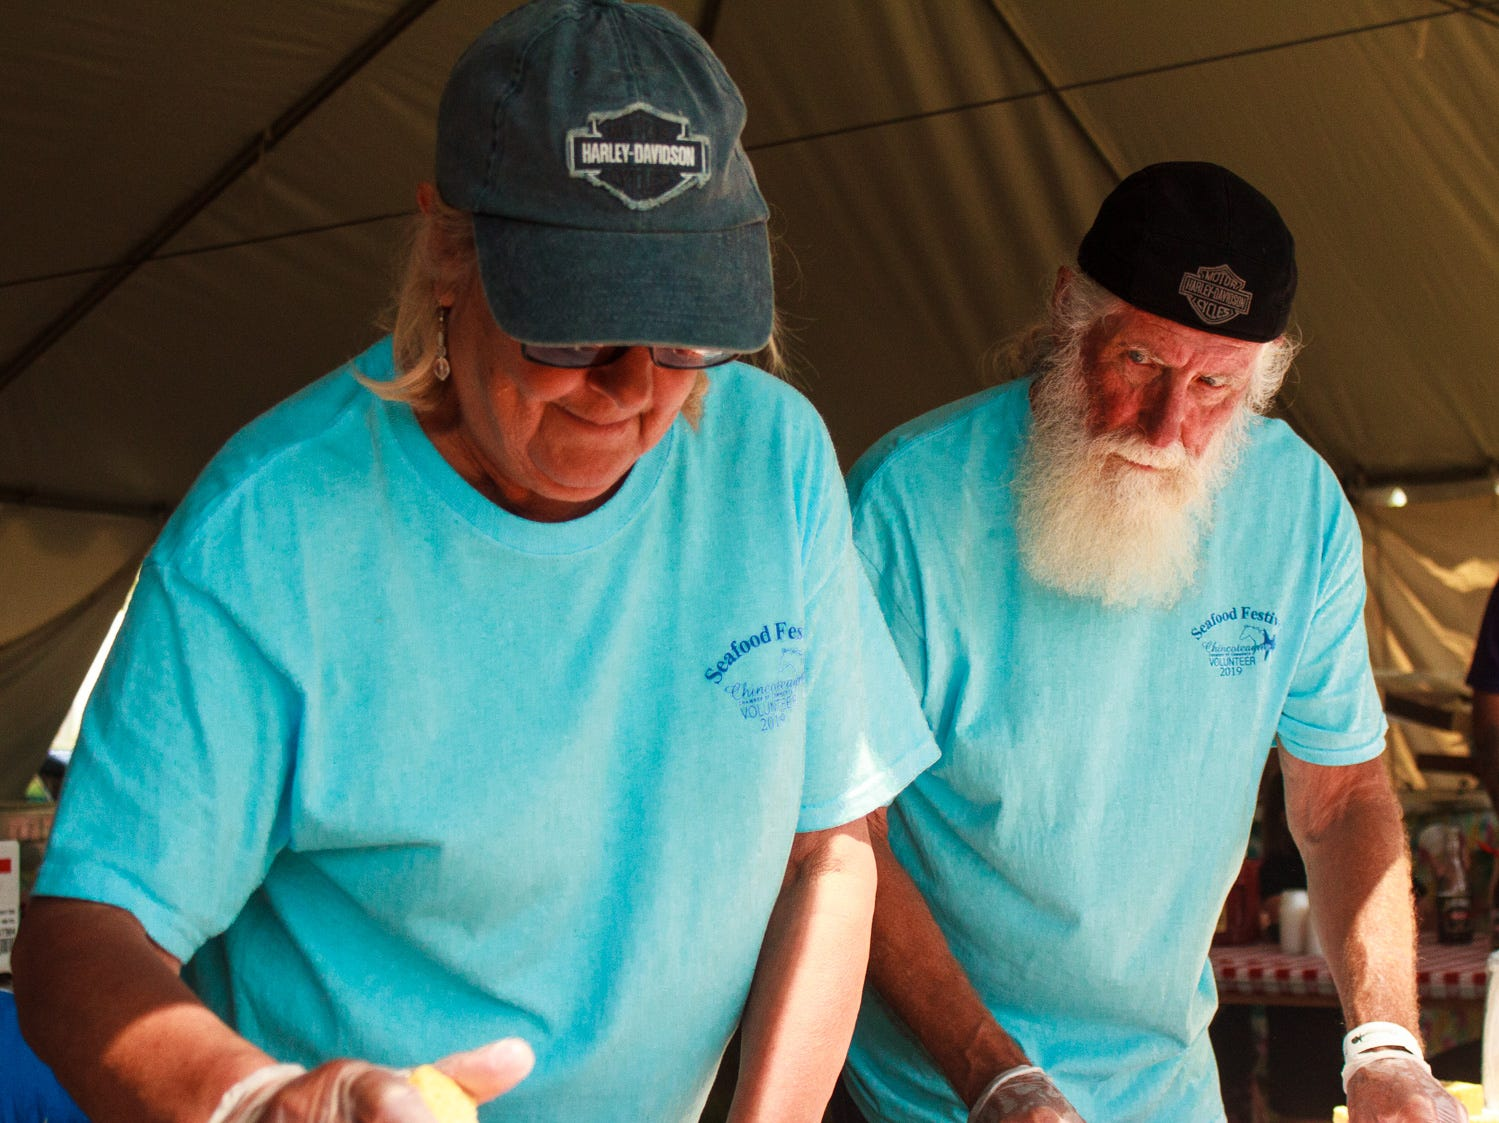 Jack and Jean Howard of Chincoteague, volunteer in handing out cornbread on Saturday, May 4, 2019 at the Chincoteague Seafood Festival in Chincoteague Island, Virginia.